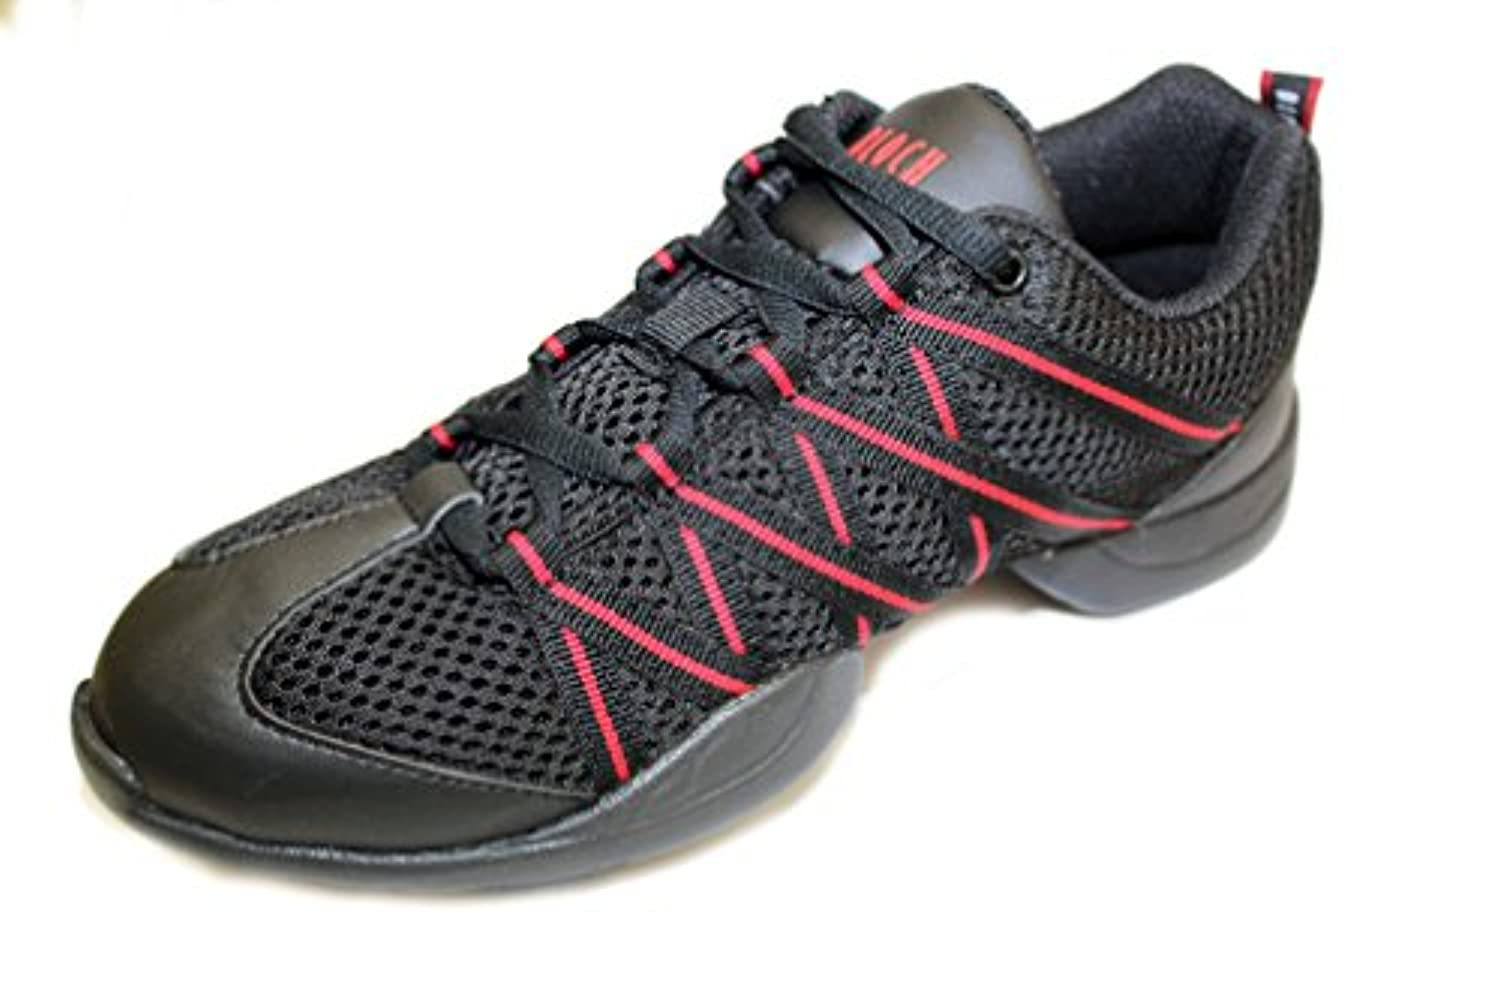 Bloch S0524 Criss Cross Sneaker Black UK 1.5 EU 33.5 US 4.5